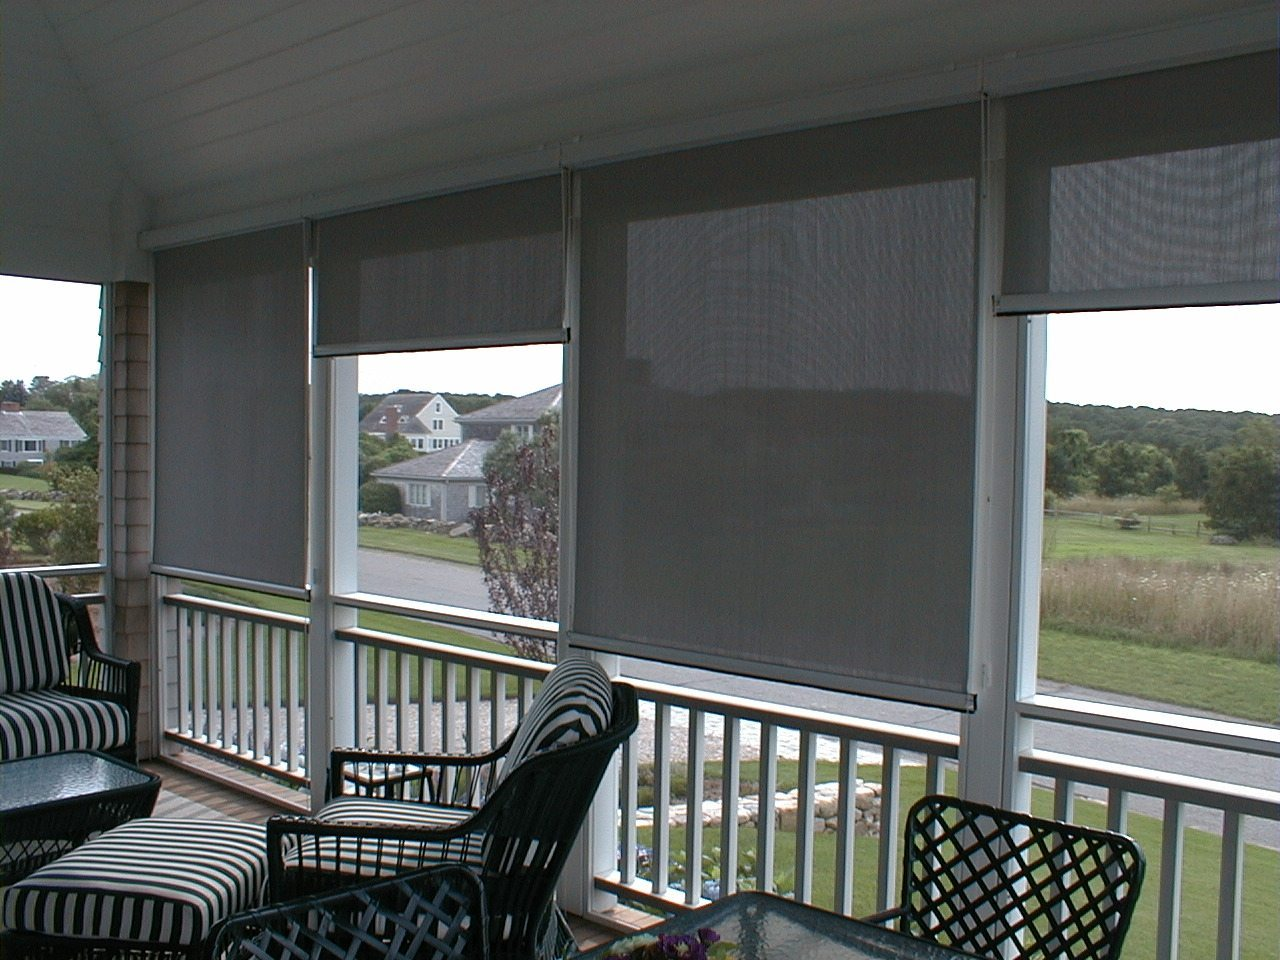 Solar Screens, screen in porch, screen in porches, screen-porch, screen porch, screening porch, patio screens, screen tight, screen in patio, Shade and Shutter Systems